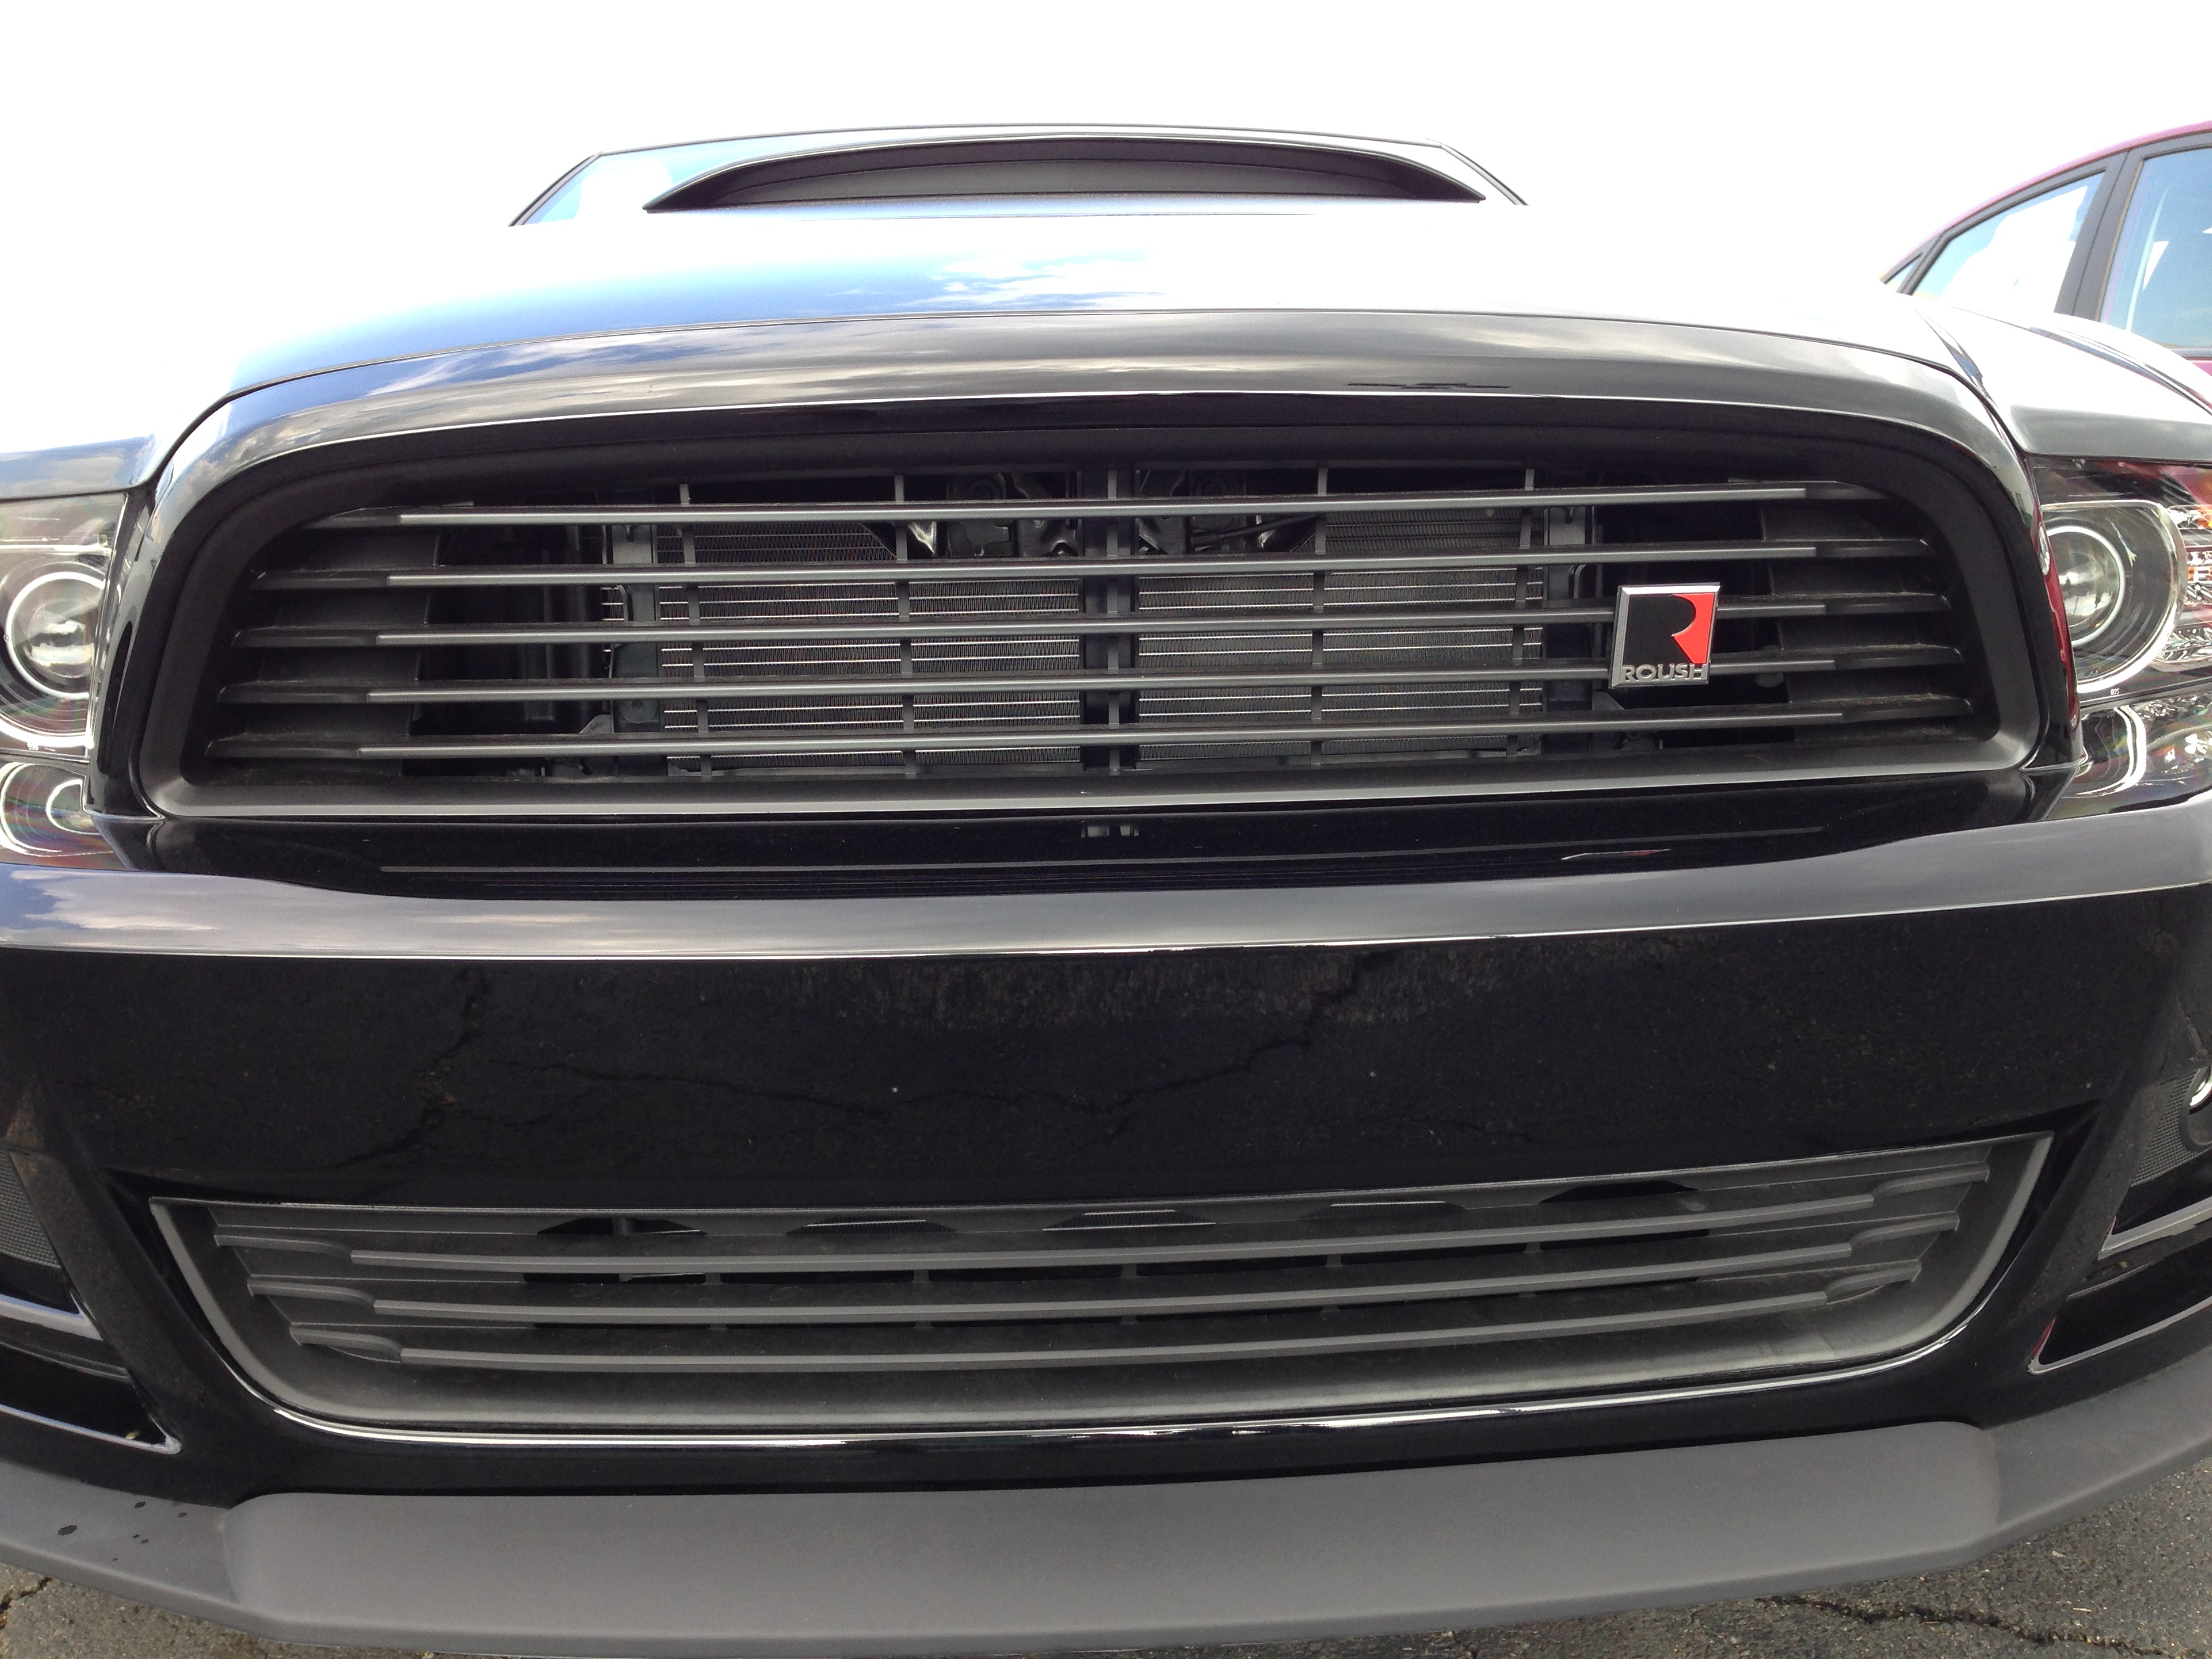 Click image for larger version  Name:RoushGrille.JPG Views:161 Size:1.83 MB ID:167213